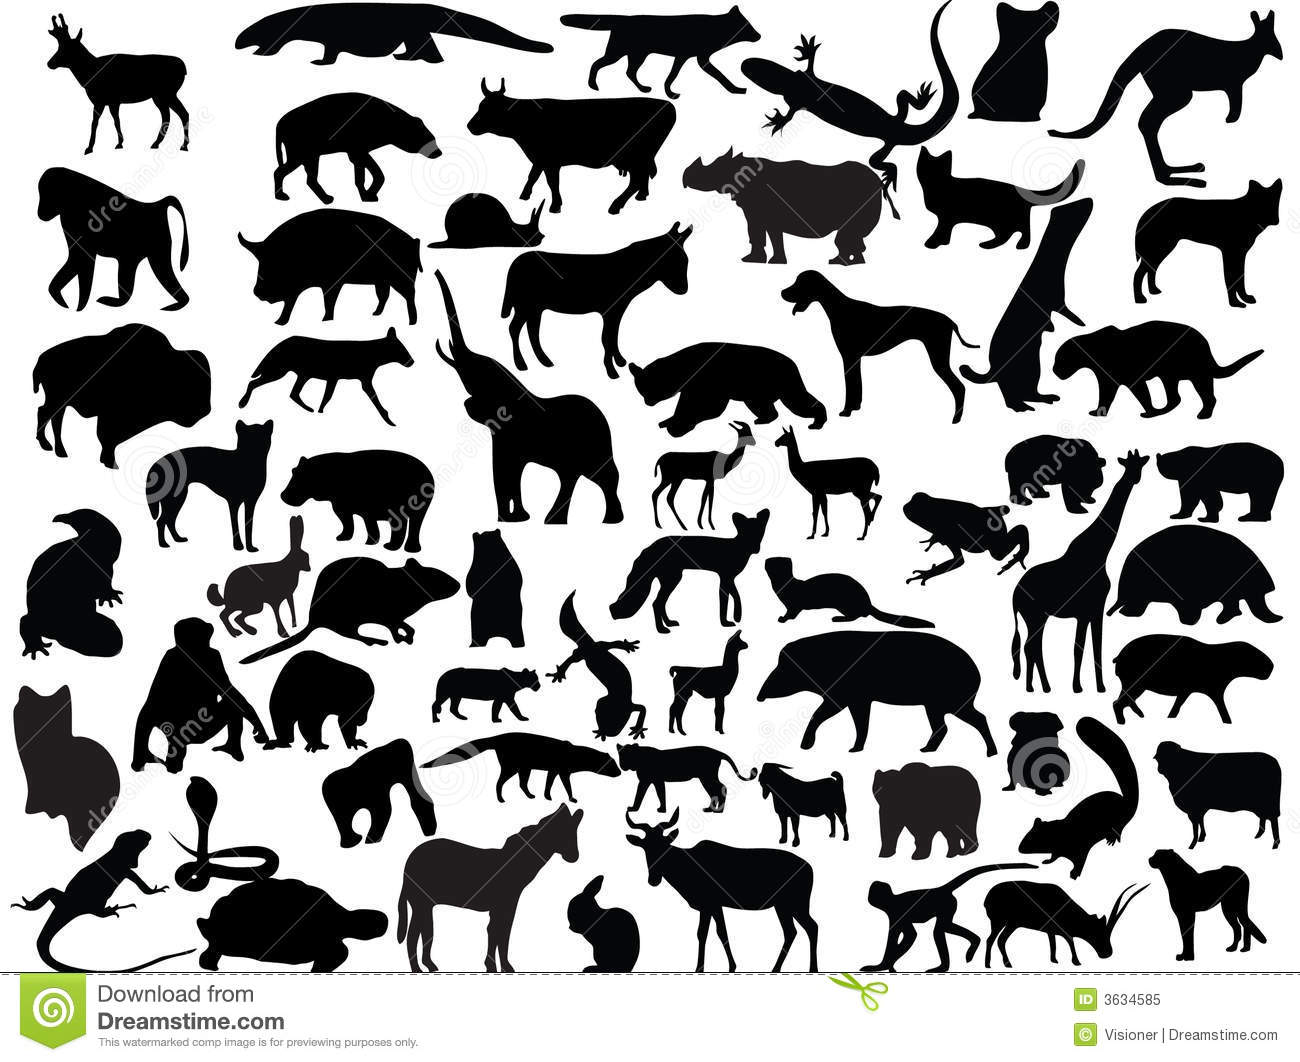 Vectors of animals